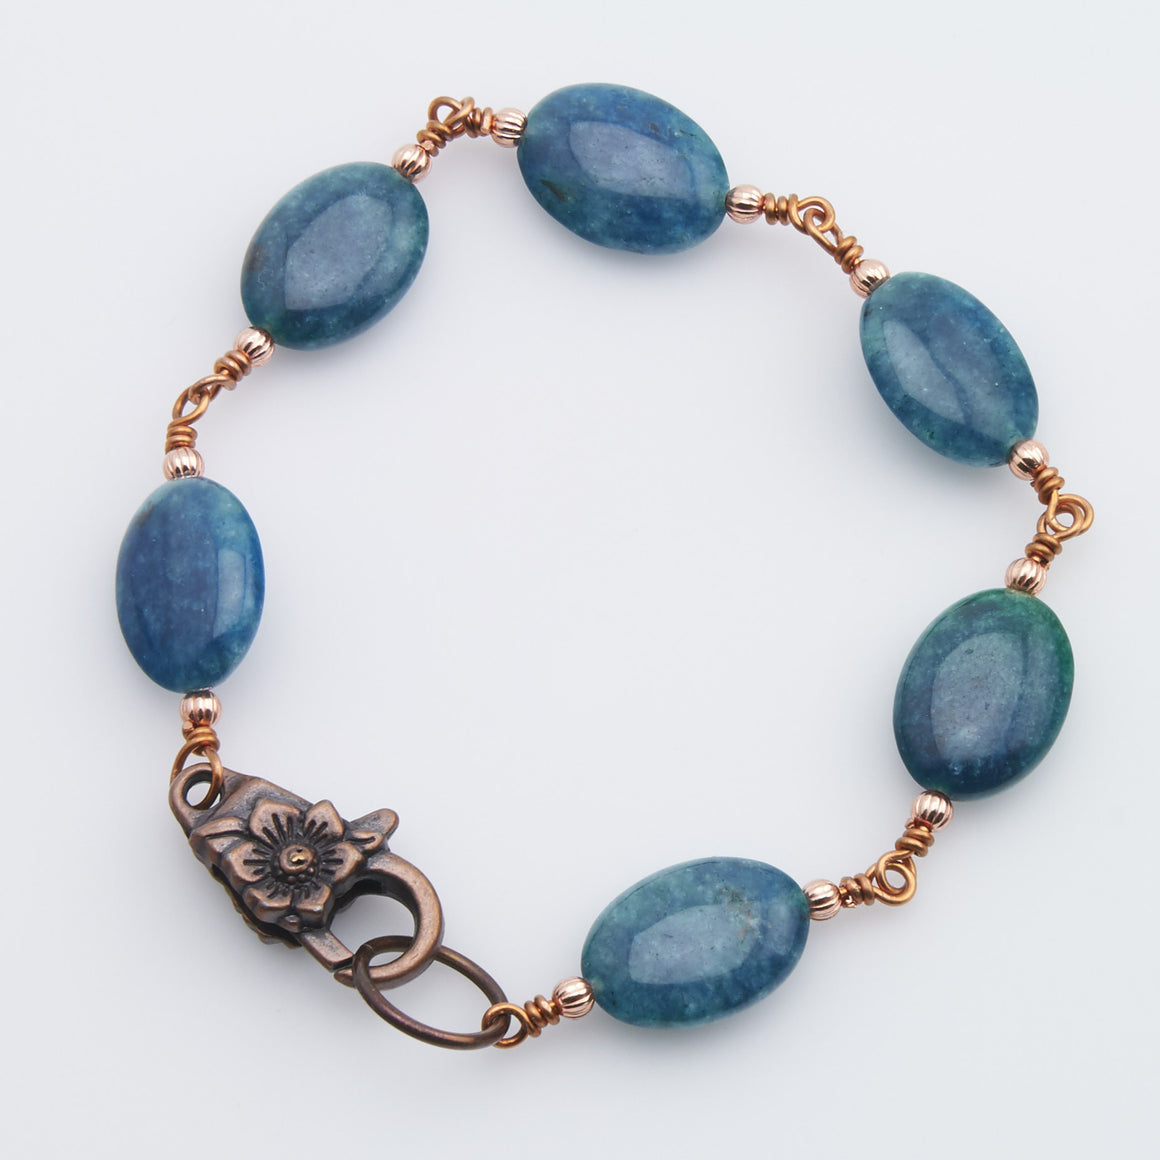 Apatite and Copper Bracelet